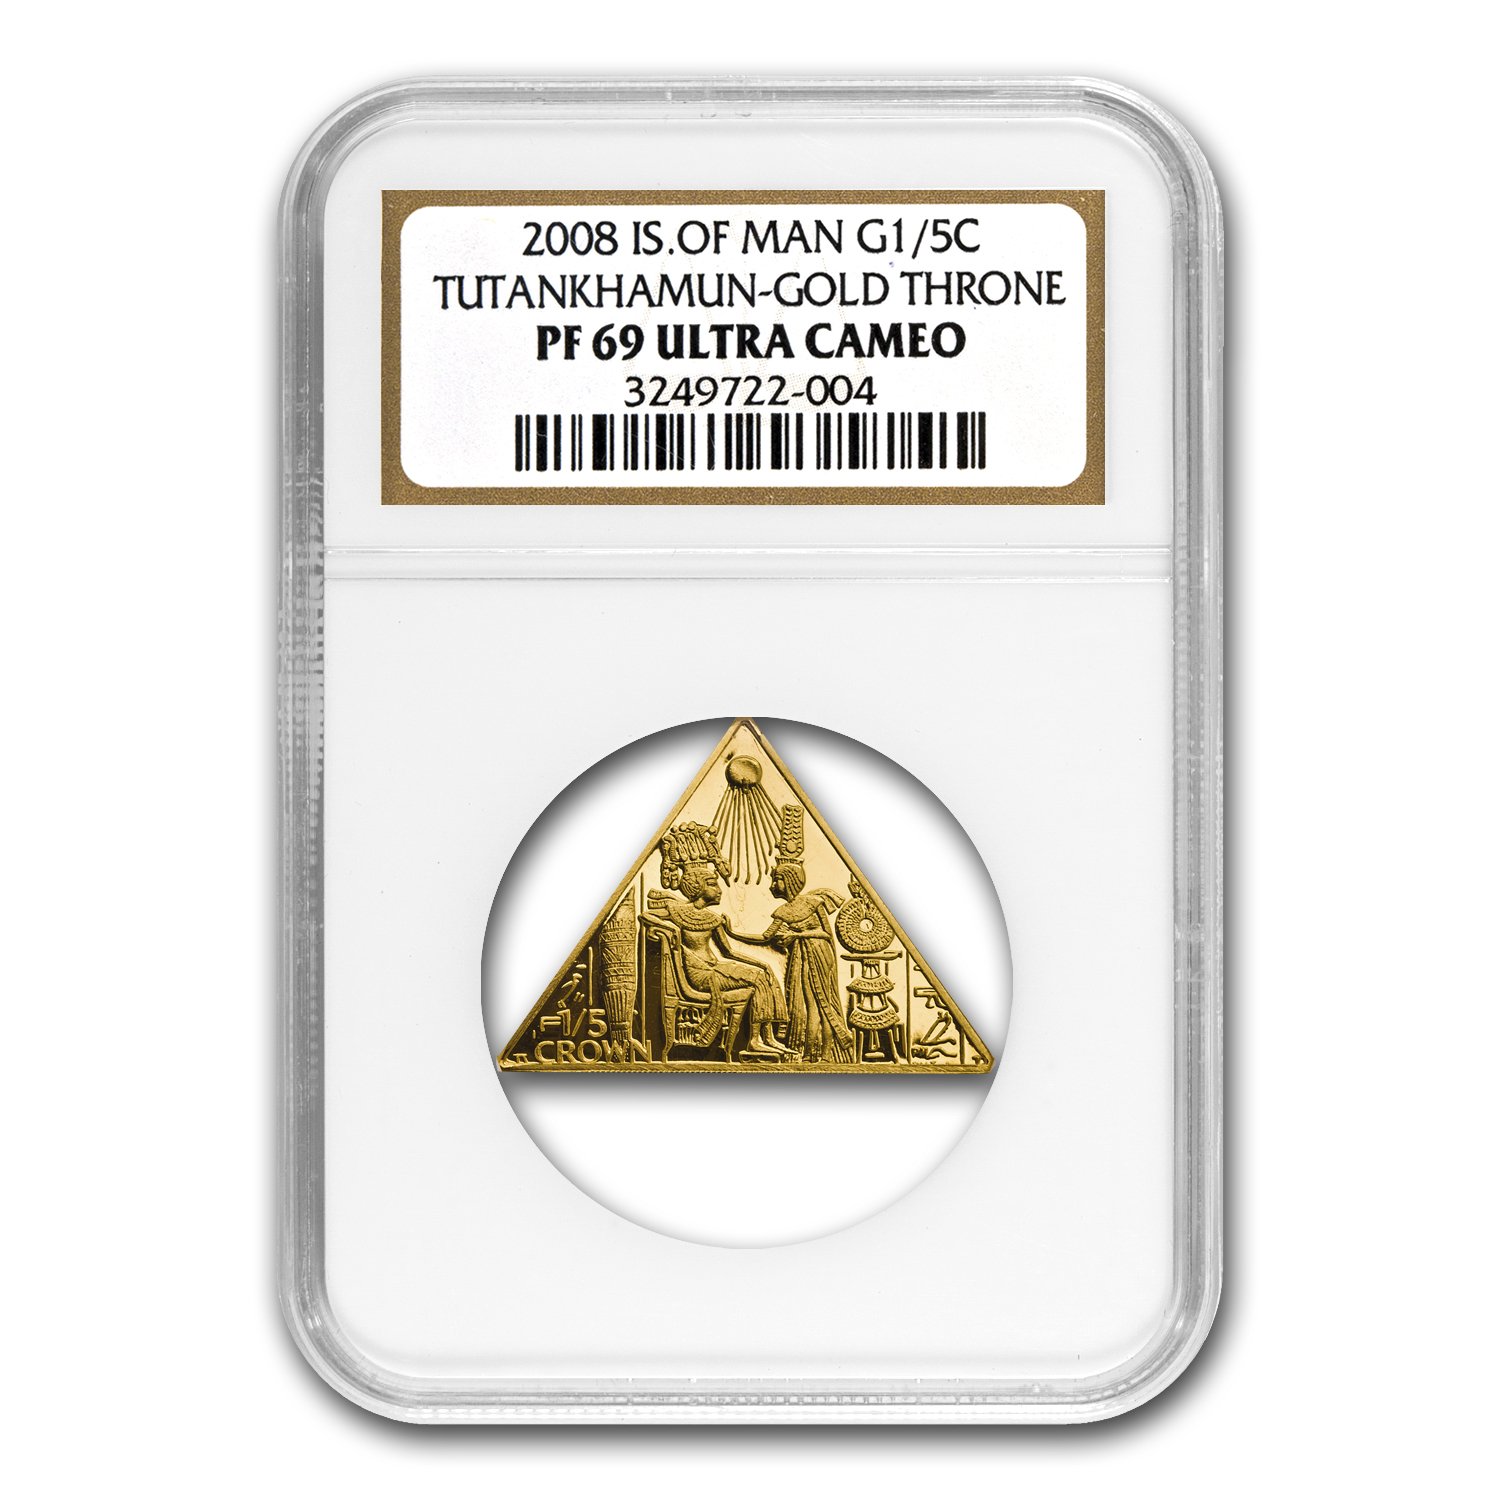 Isle of Man Gold 1/5 oz Crown King Tut Triangle Coin PF-69 NGC